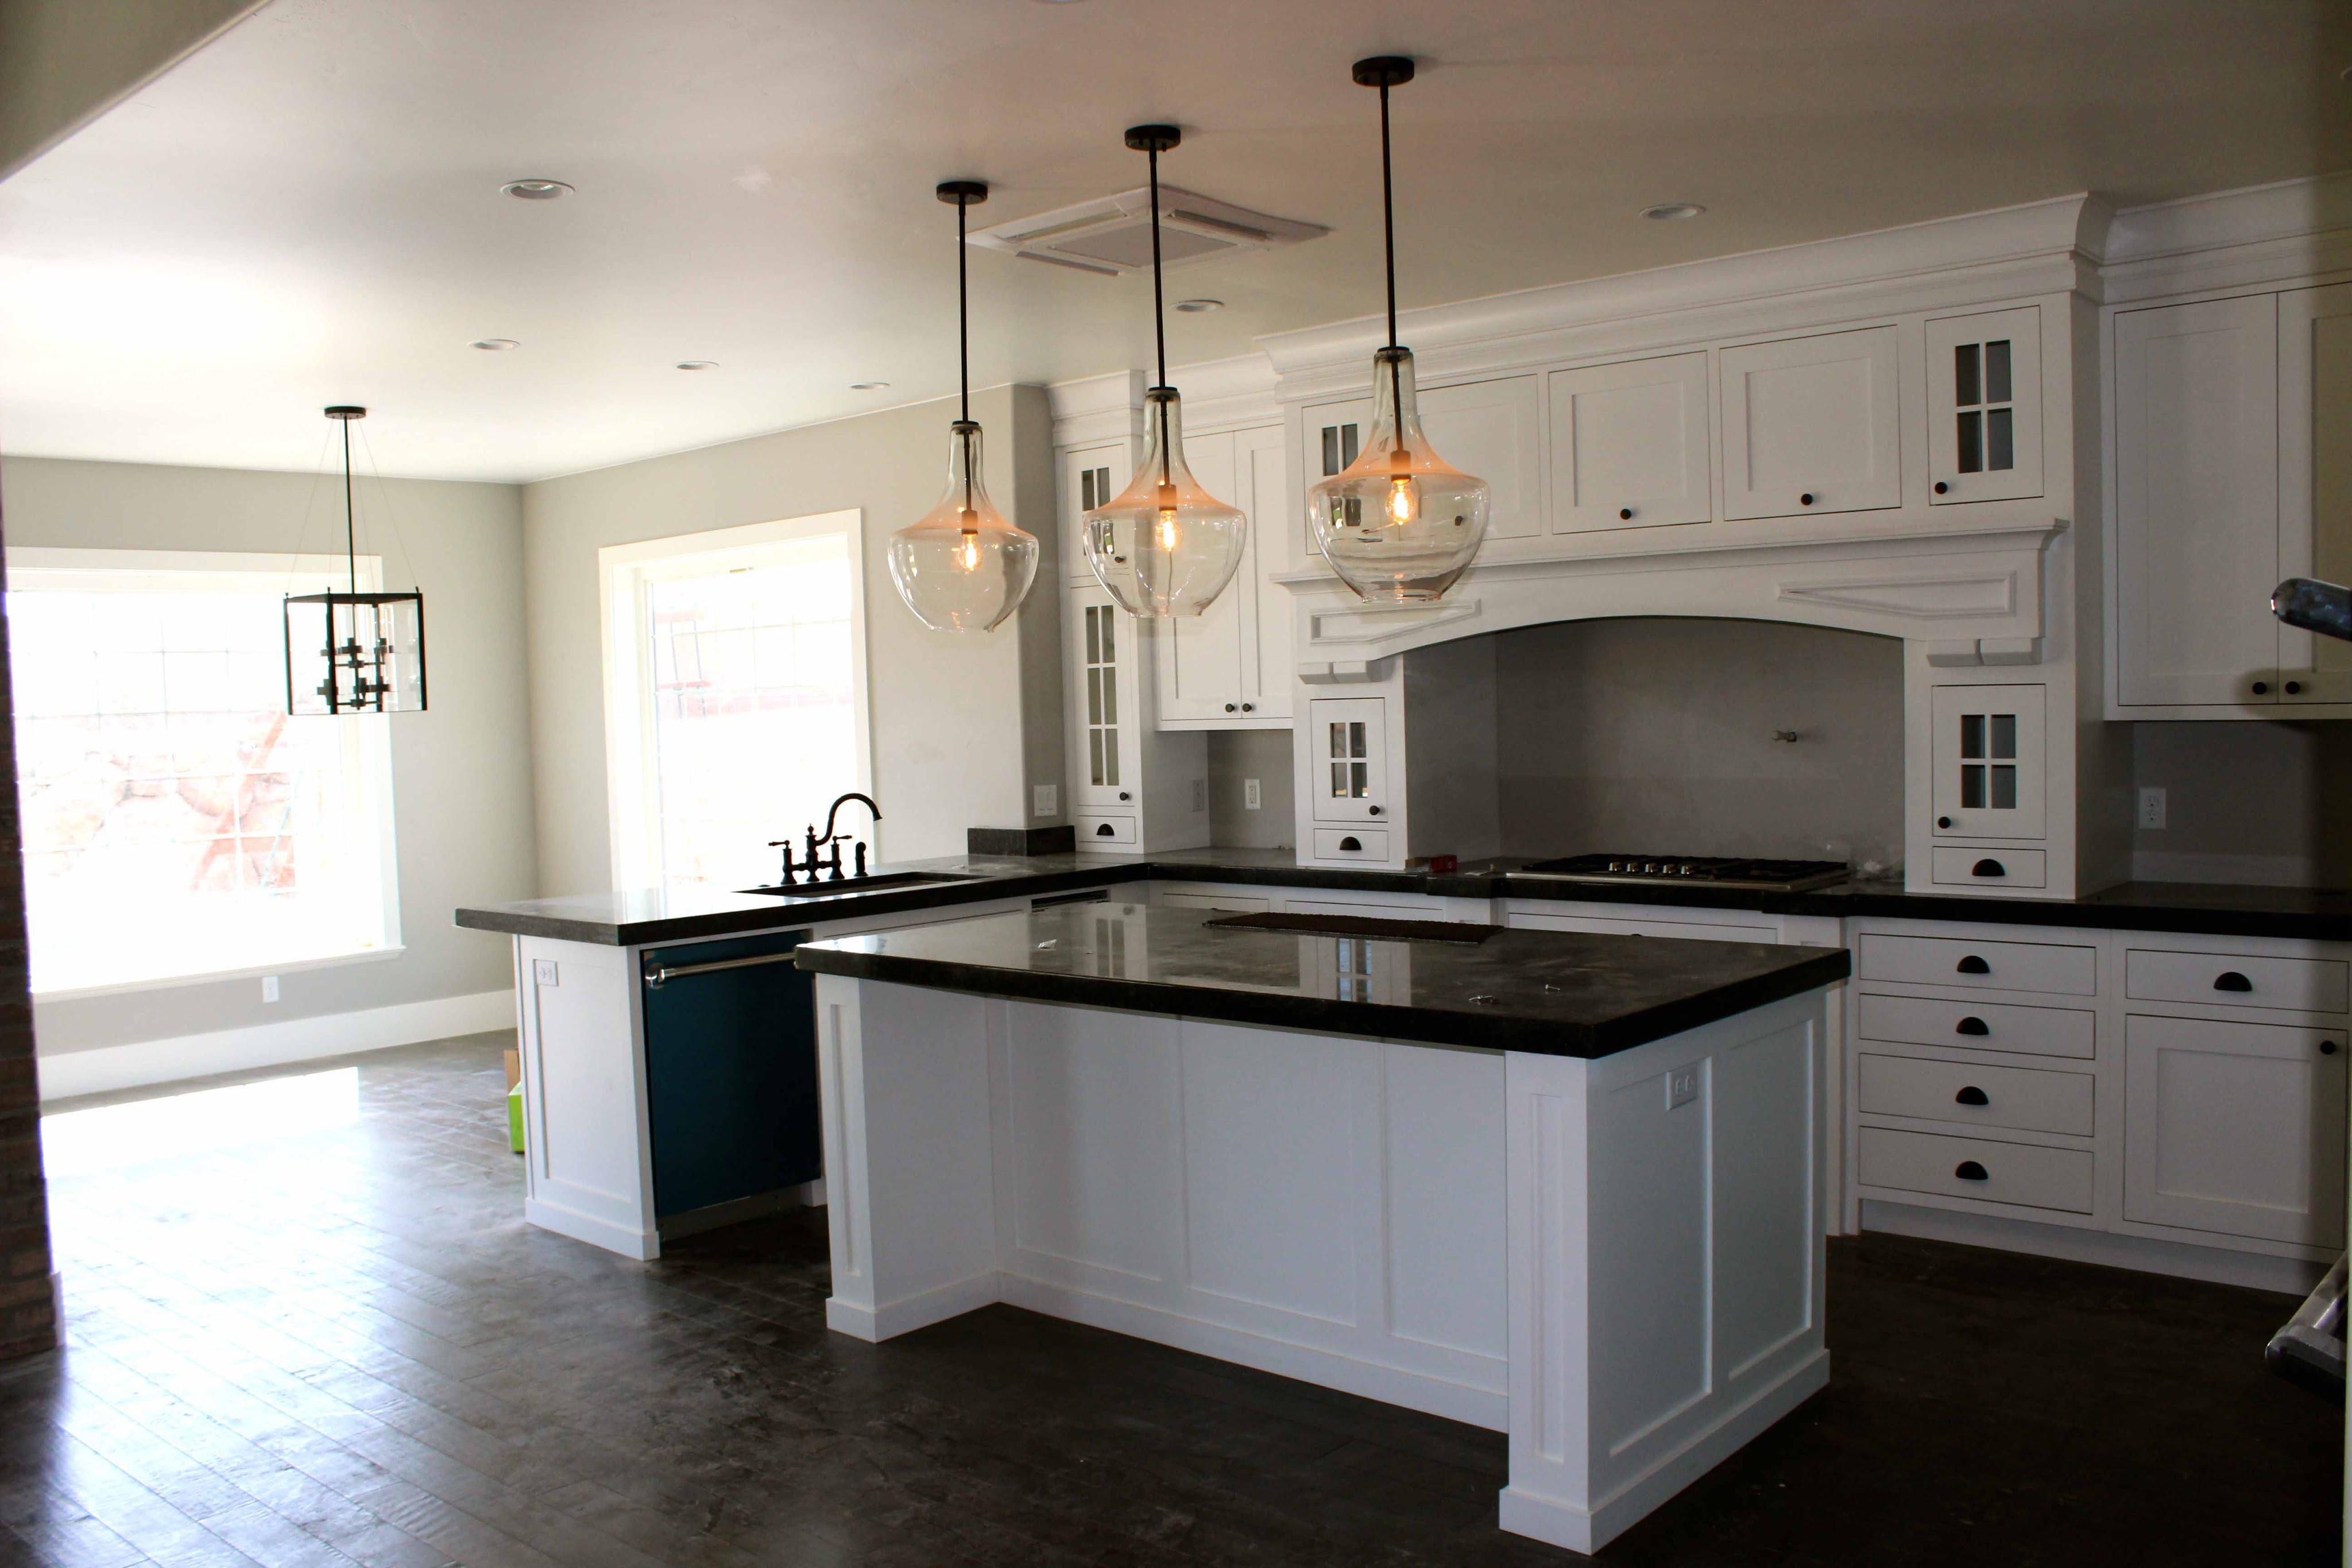 centsably farmhouse style sutton fixtures island pendant light fabulous kitchen under lighting